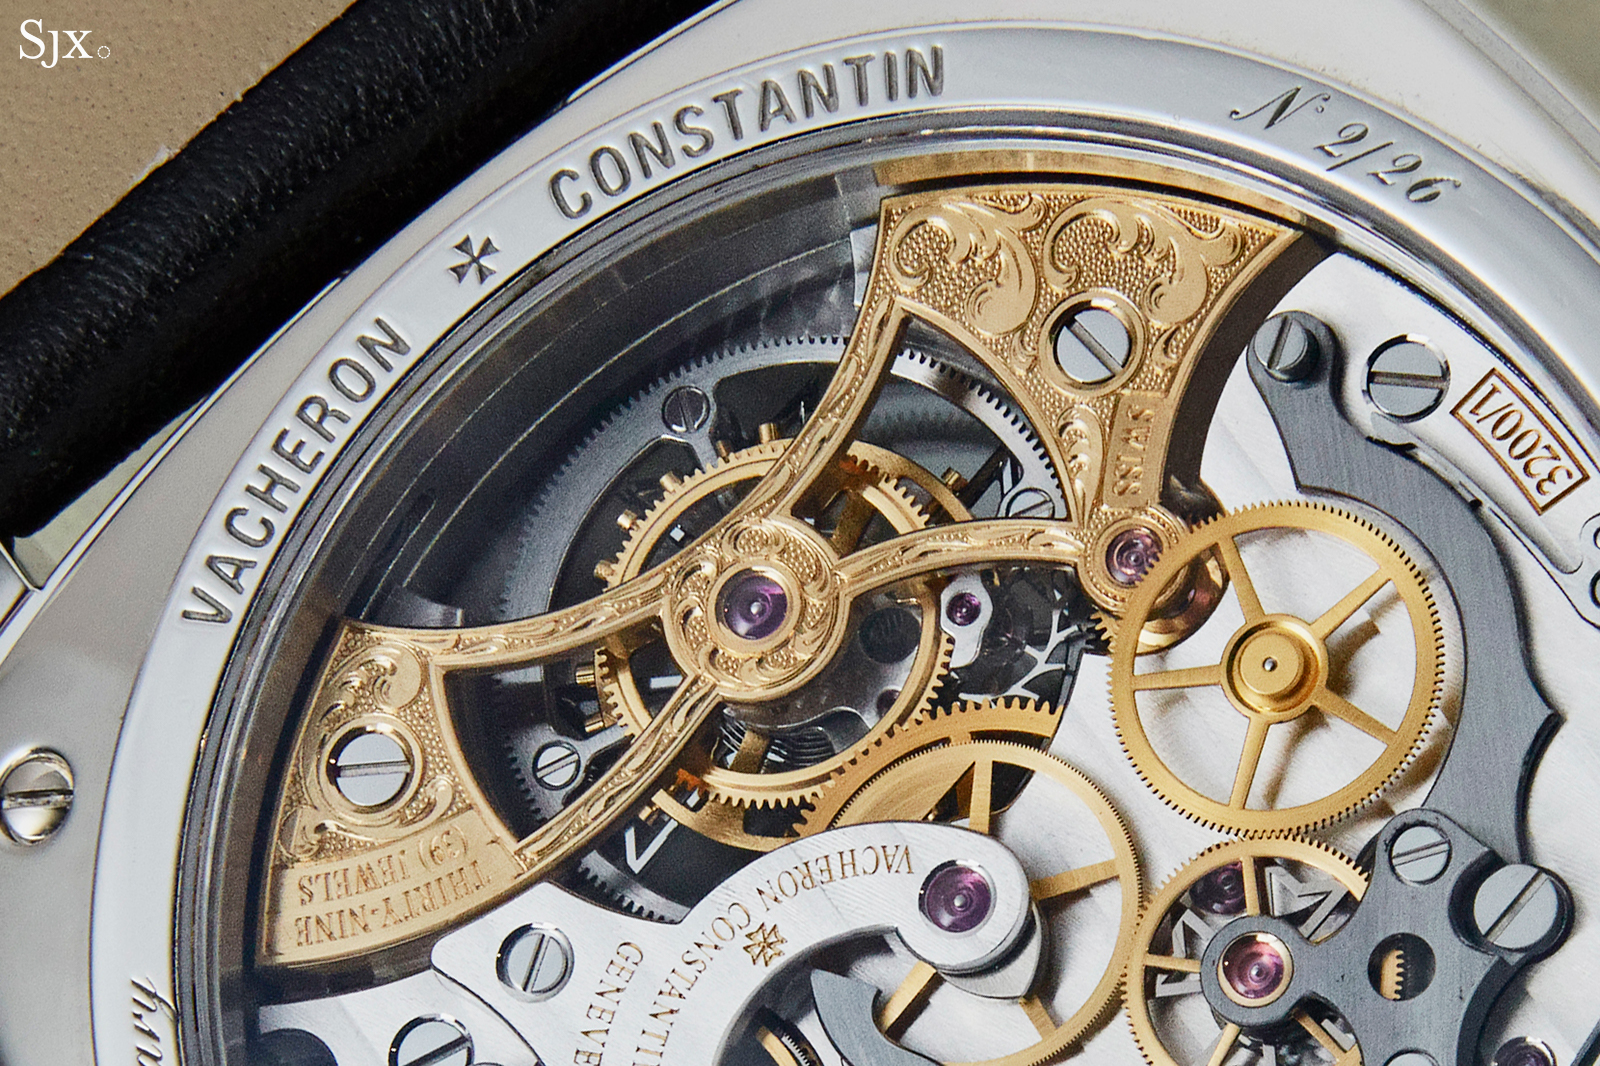 Vacheron Constantin Harmony Chronograph Tourbillon 260th Anniversary back 2